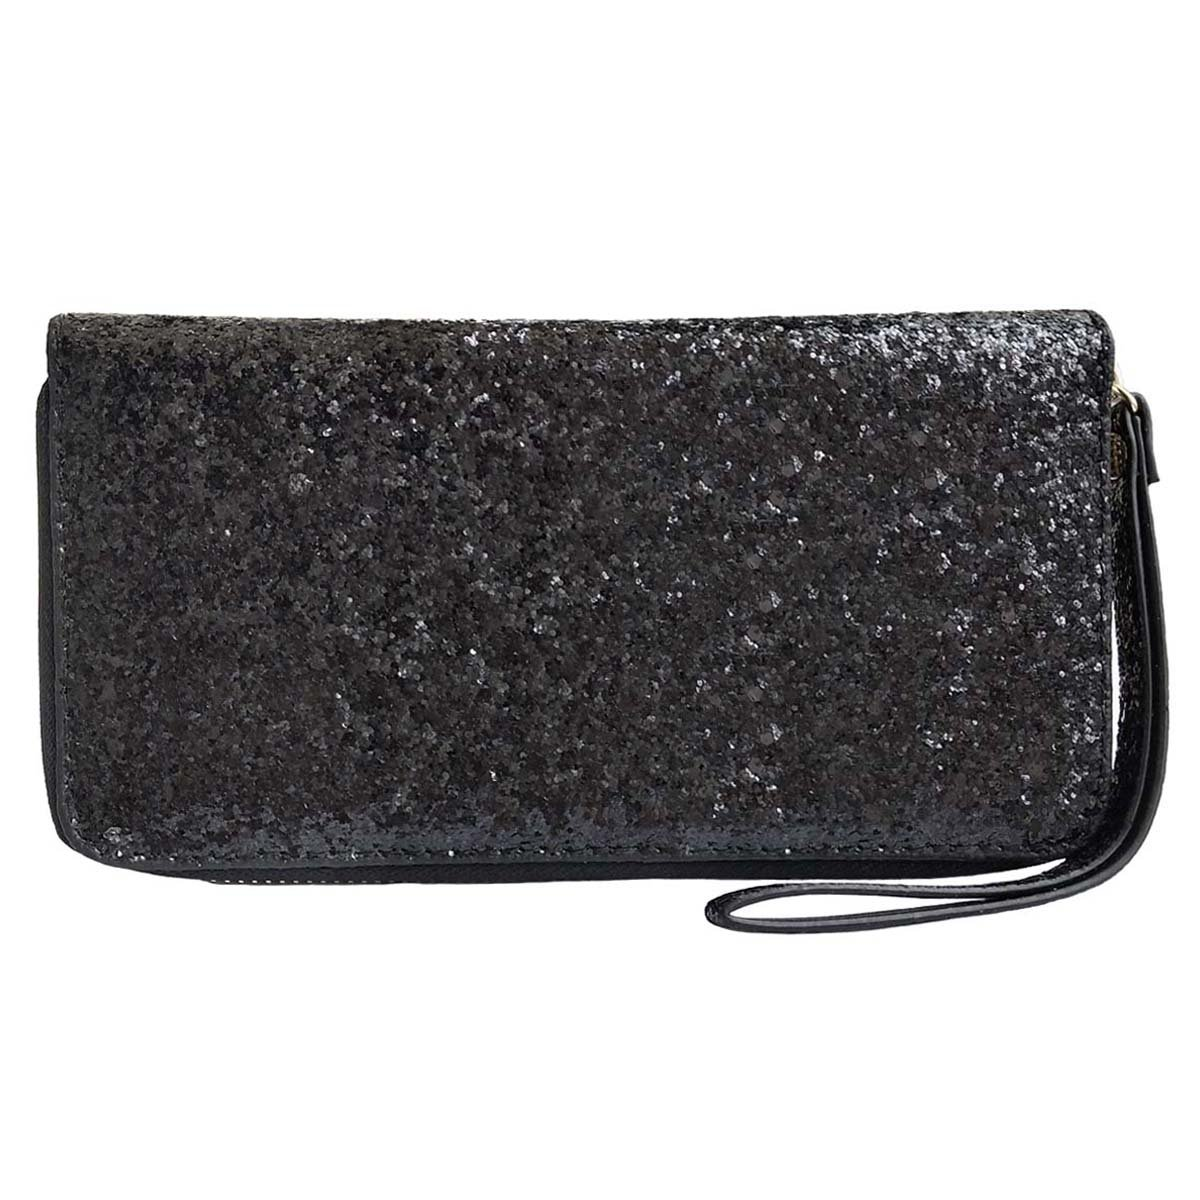 Women Wristlet Wallet - Sequined Clutch Bag with Zipper Closure - Black, by Beaulegan by BEAULEGAN (Image #1)